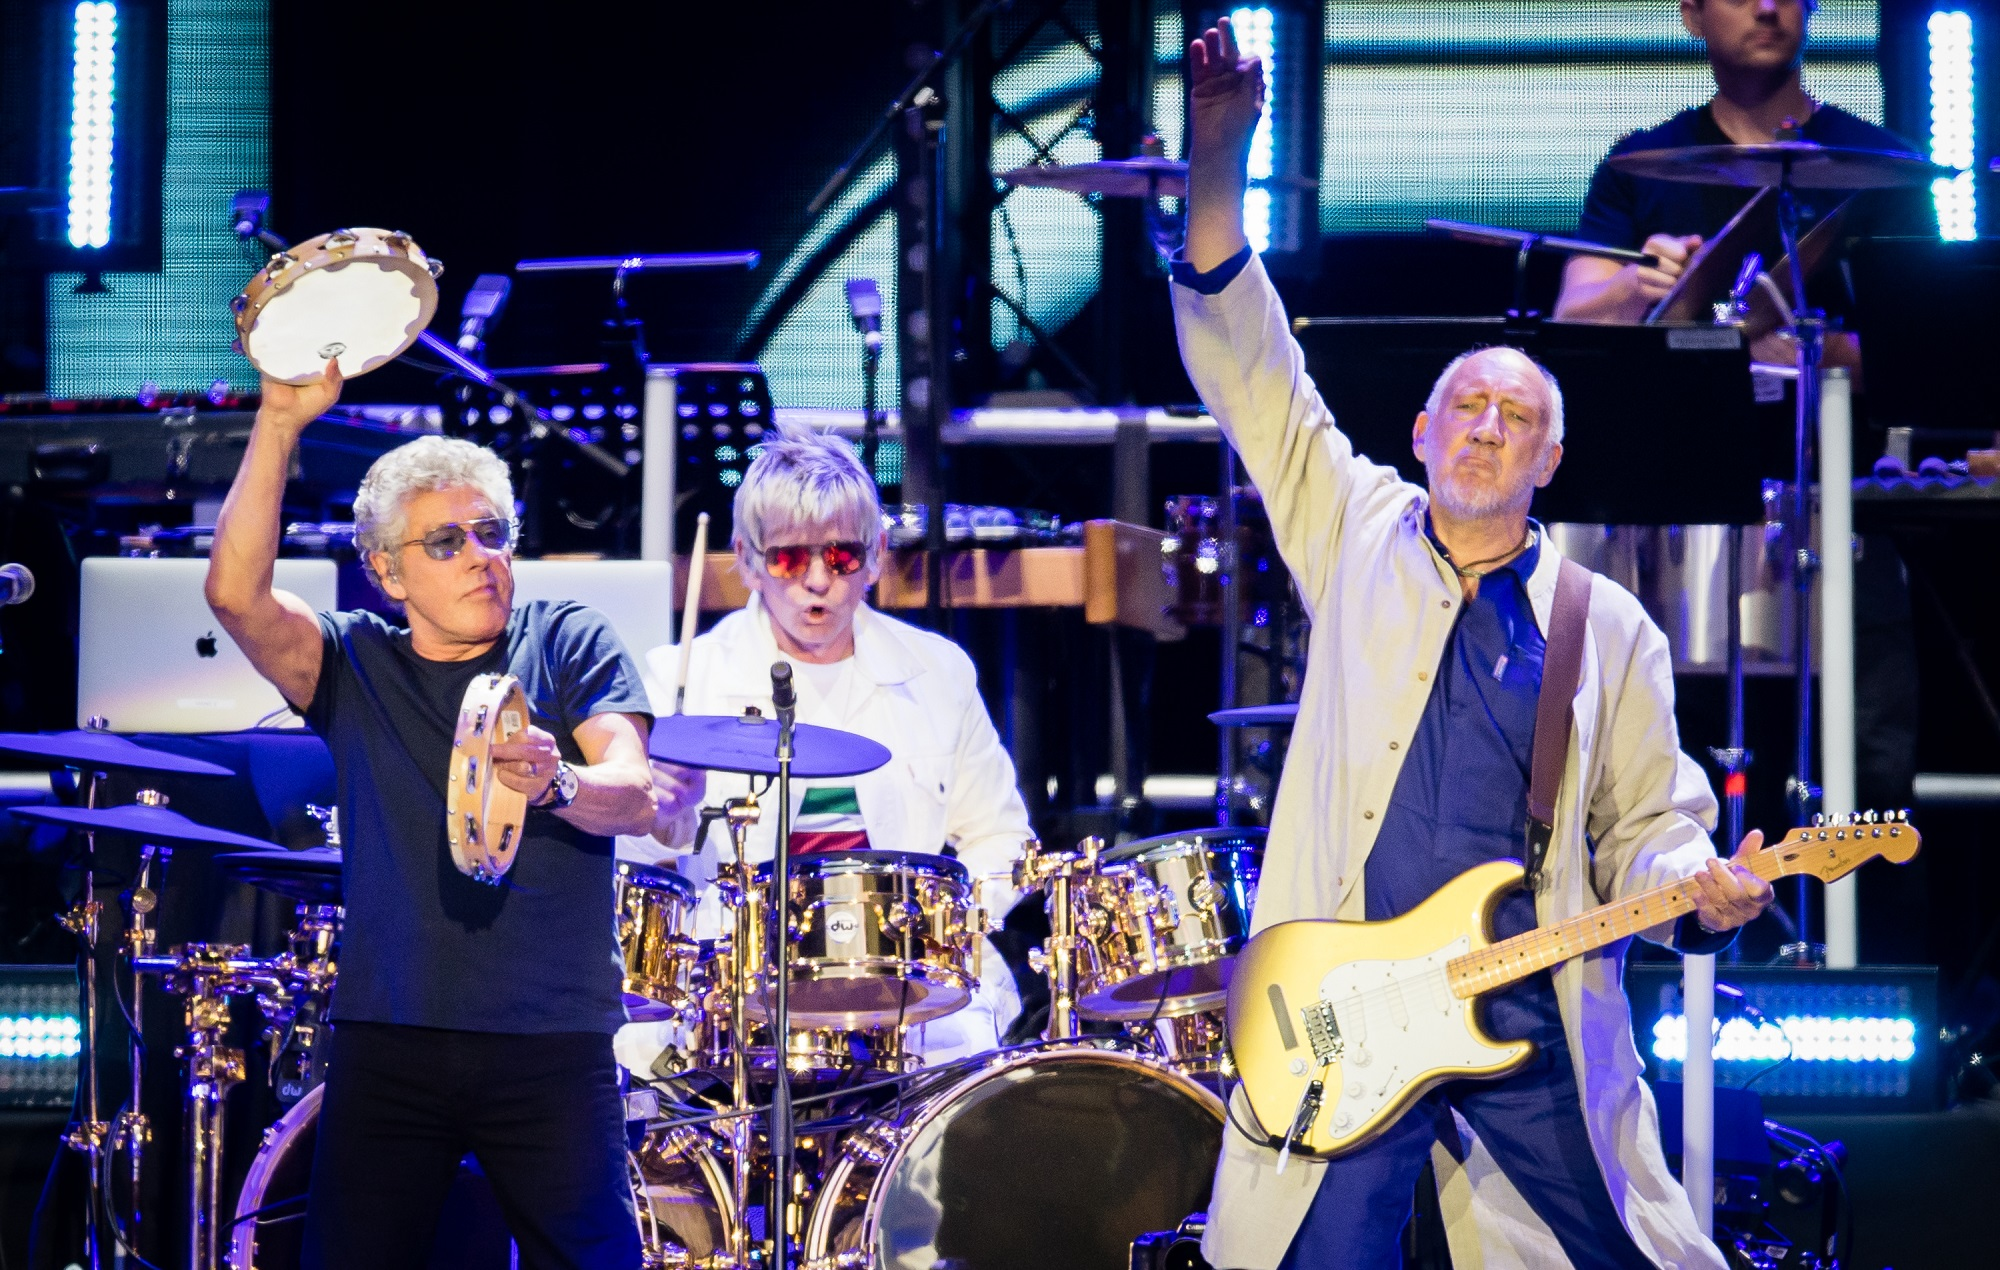 Roger Daltrey and Pete Townshend of The Who perform live on stage at Wembley Stadium